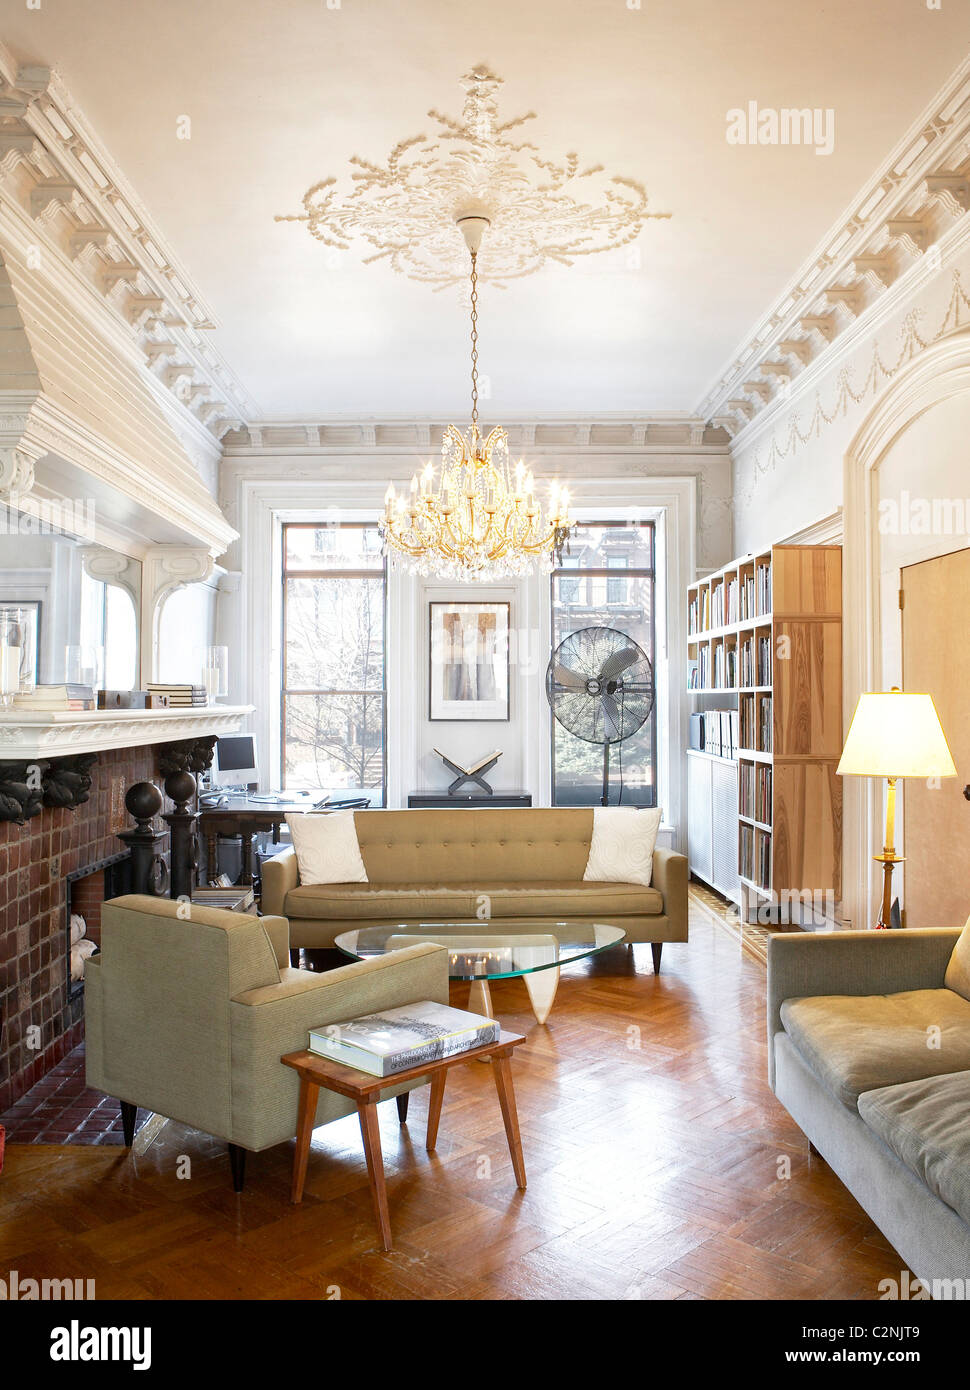 living room furniture brooklyn dark gray sofa ideas brownstone with white painted ceiling mouldings parquet floor chandelier and mid century